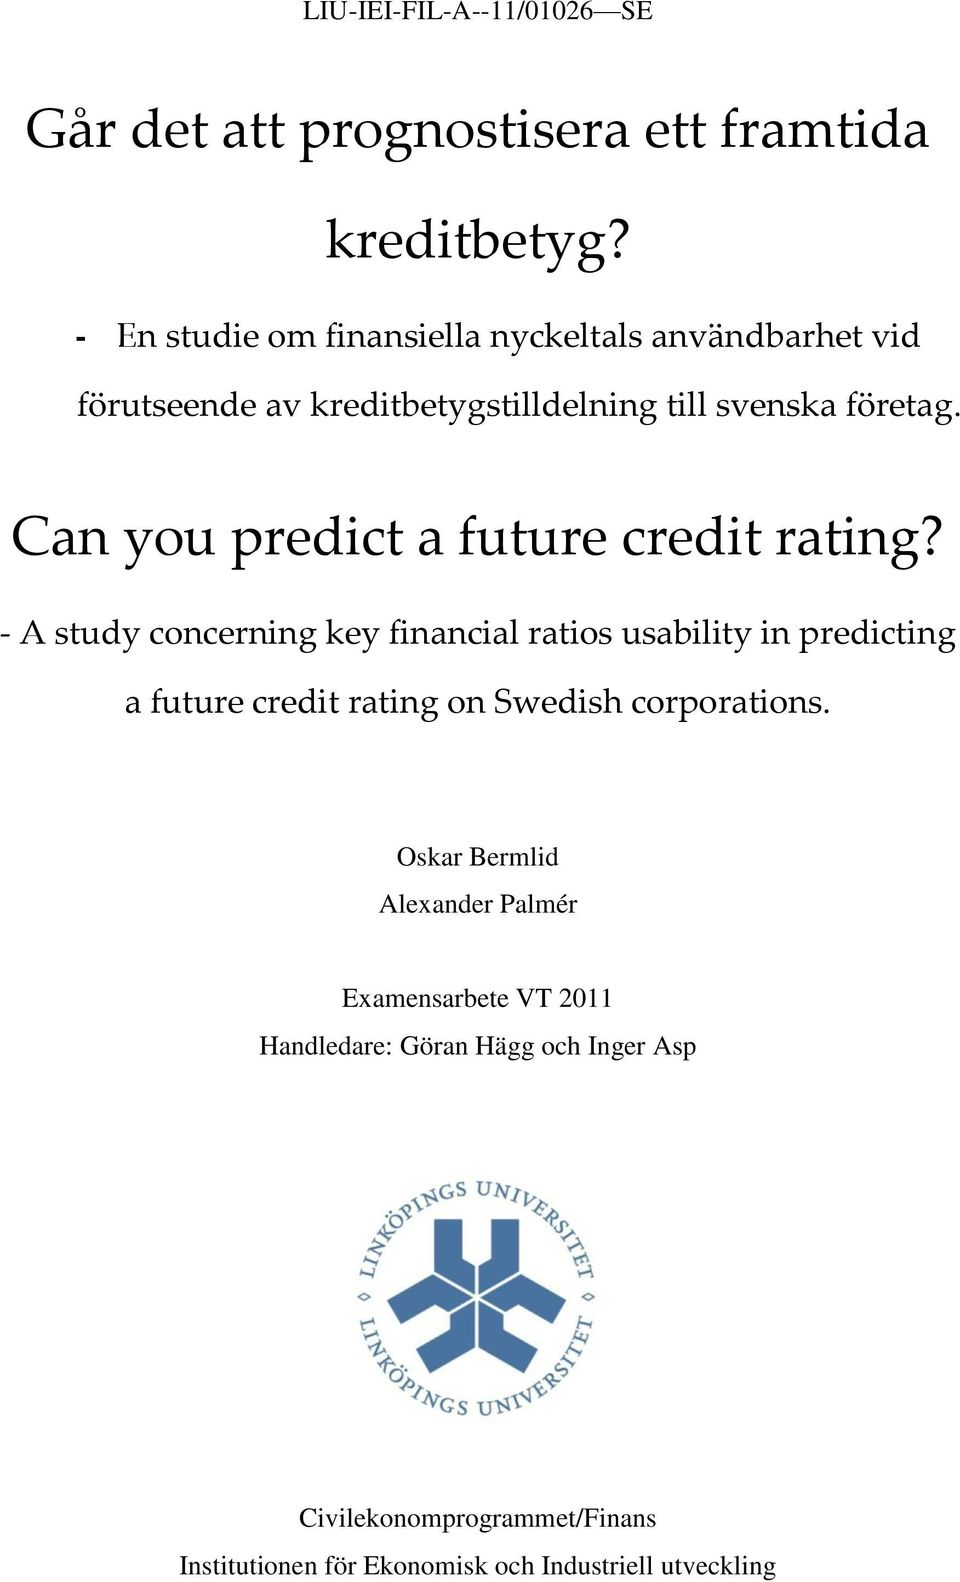 Can you predict a future credit rating?